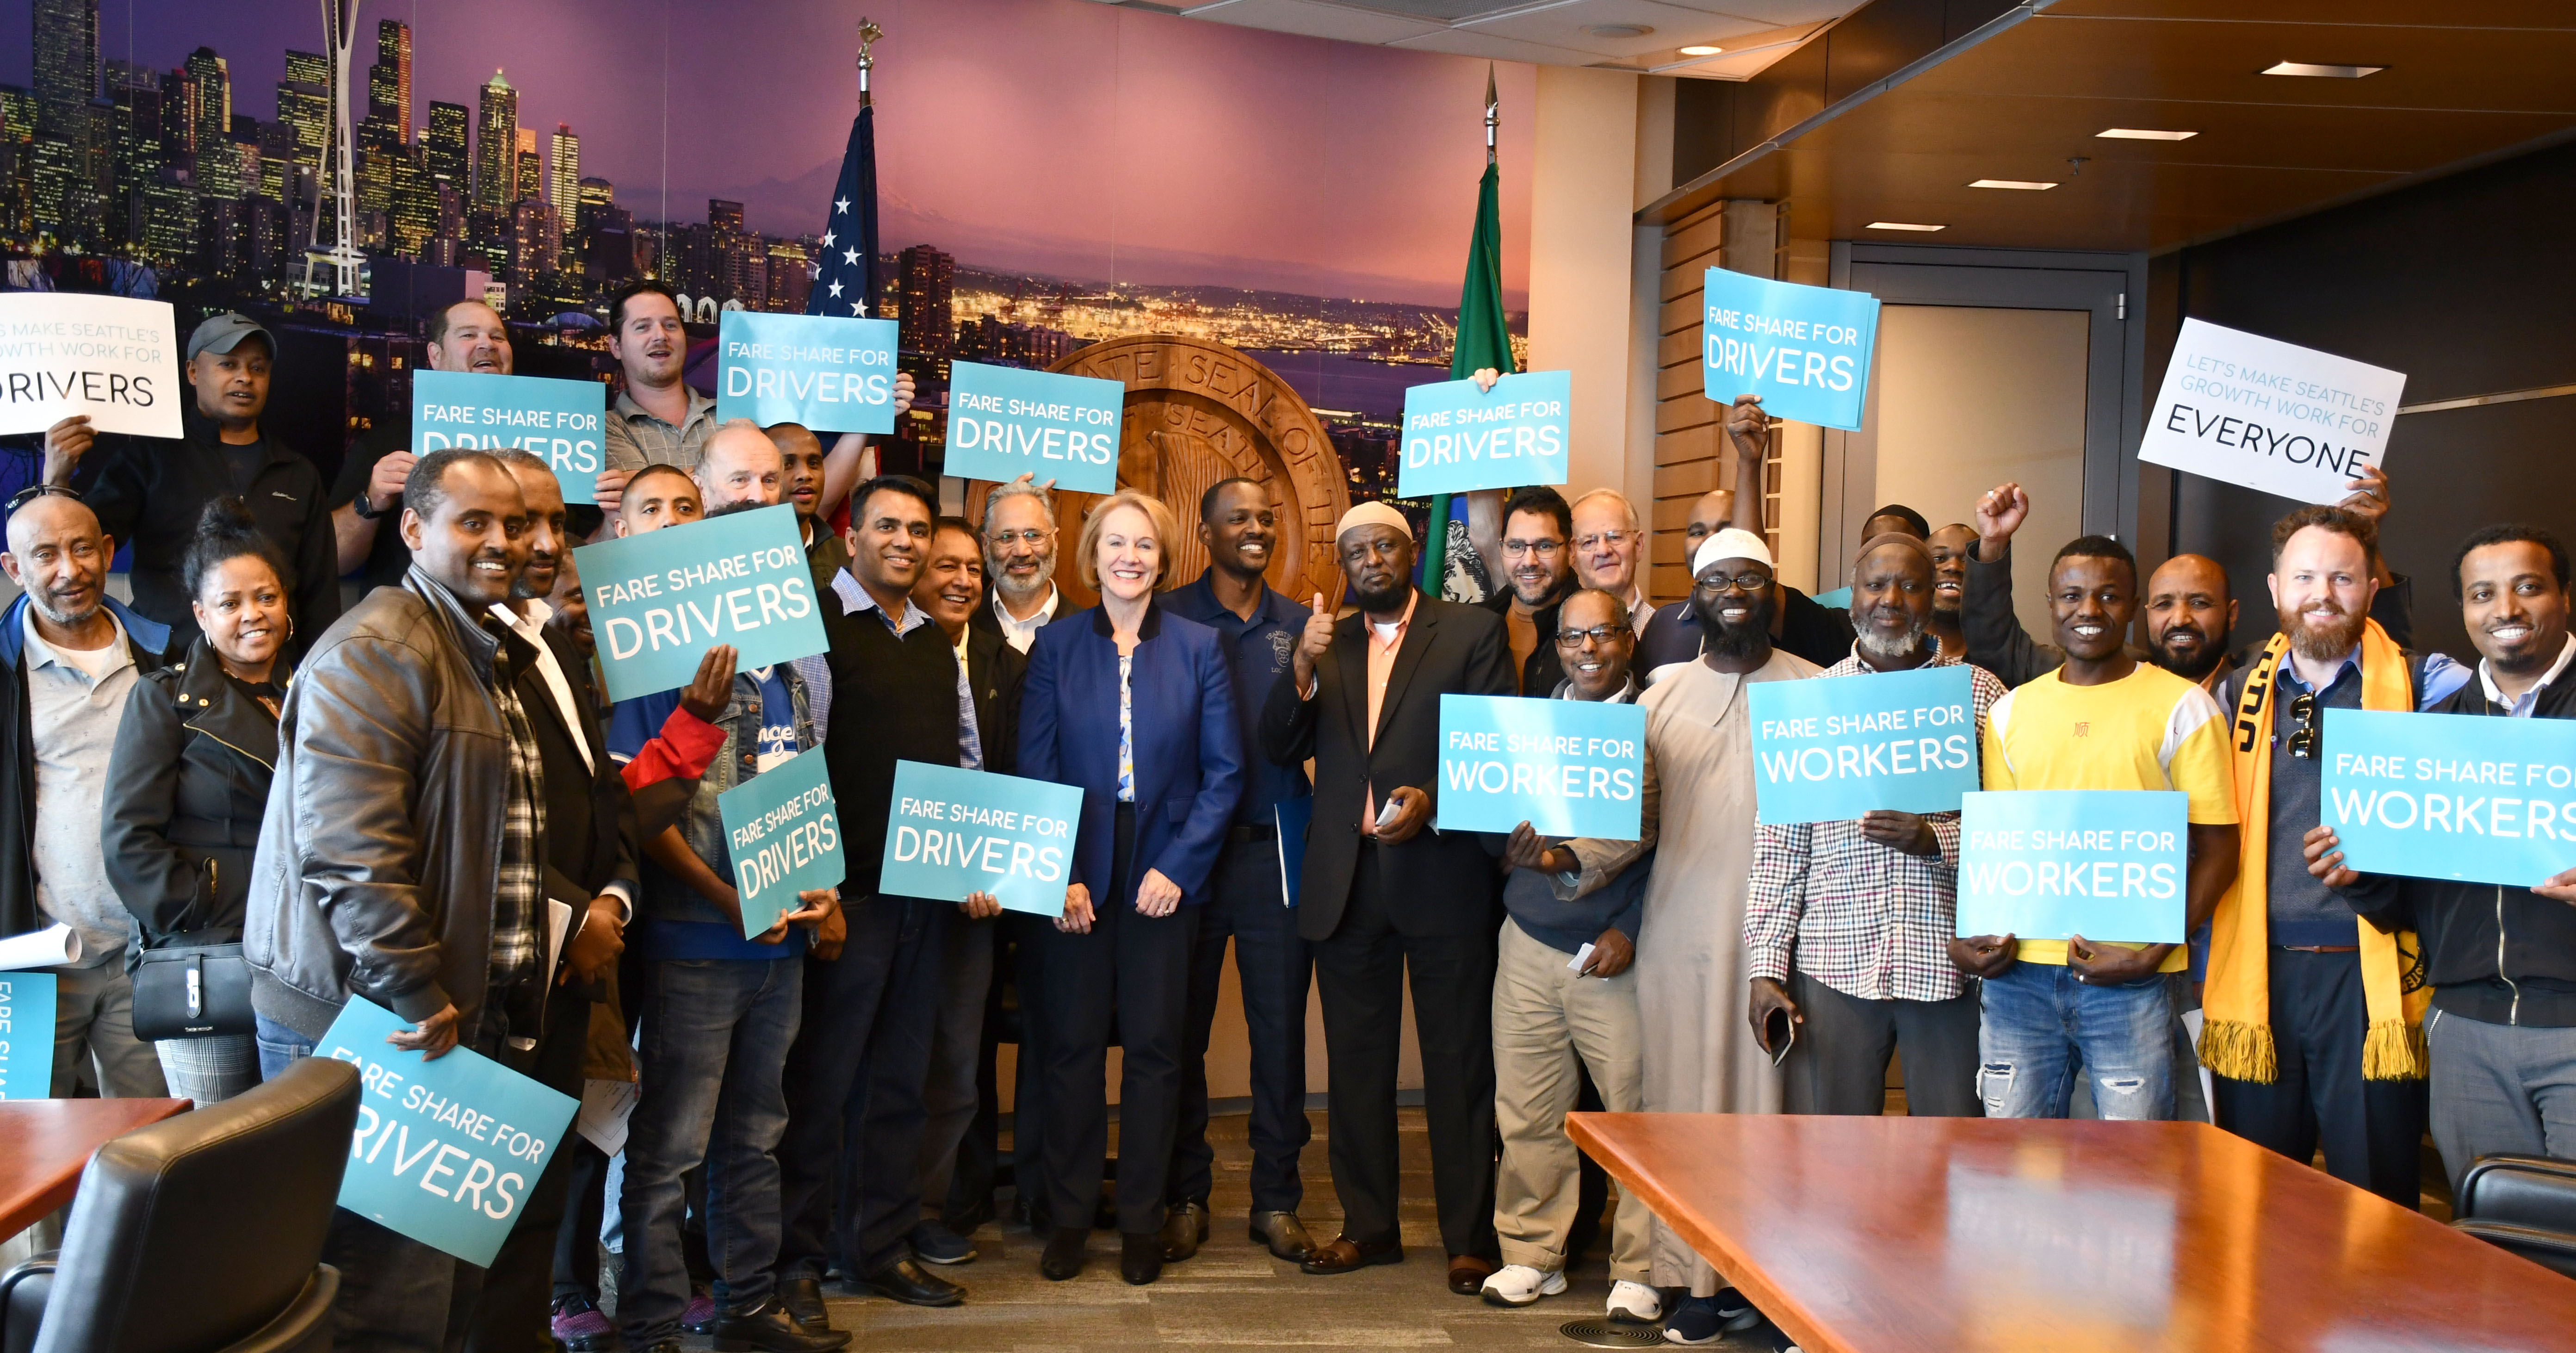 Seattle Uber & Lyft Drivers Call Passage of 'Fare Share' Legislation a Historic Victory Image